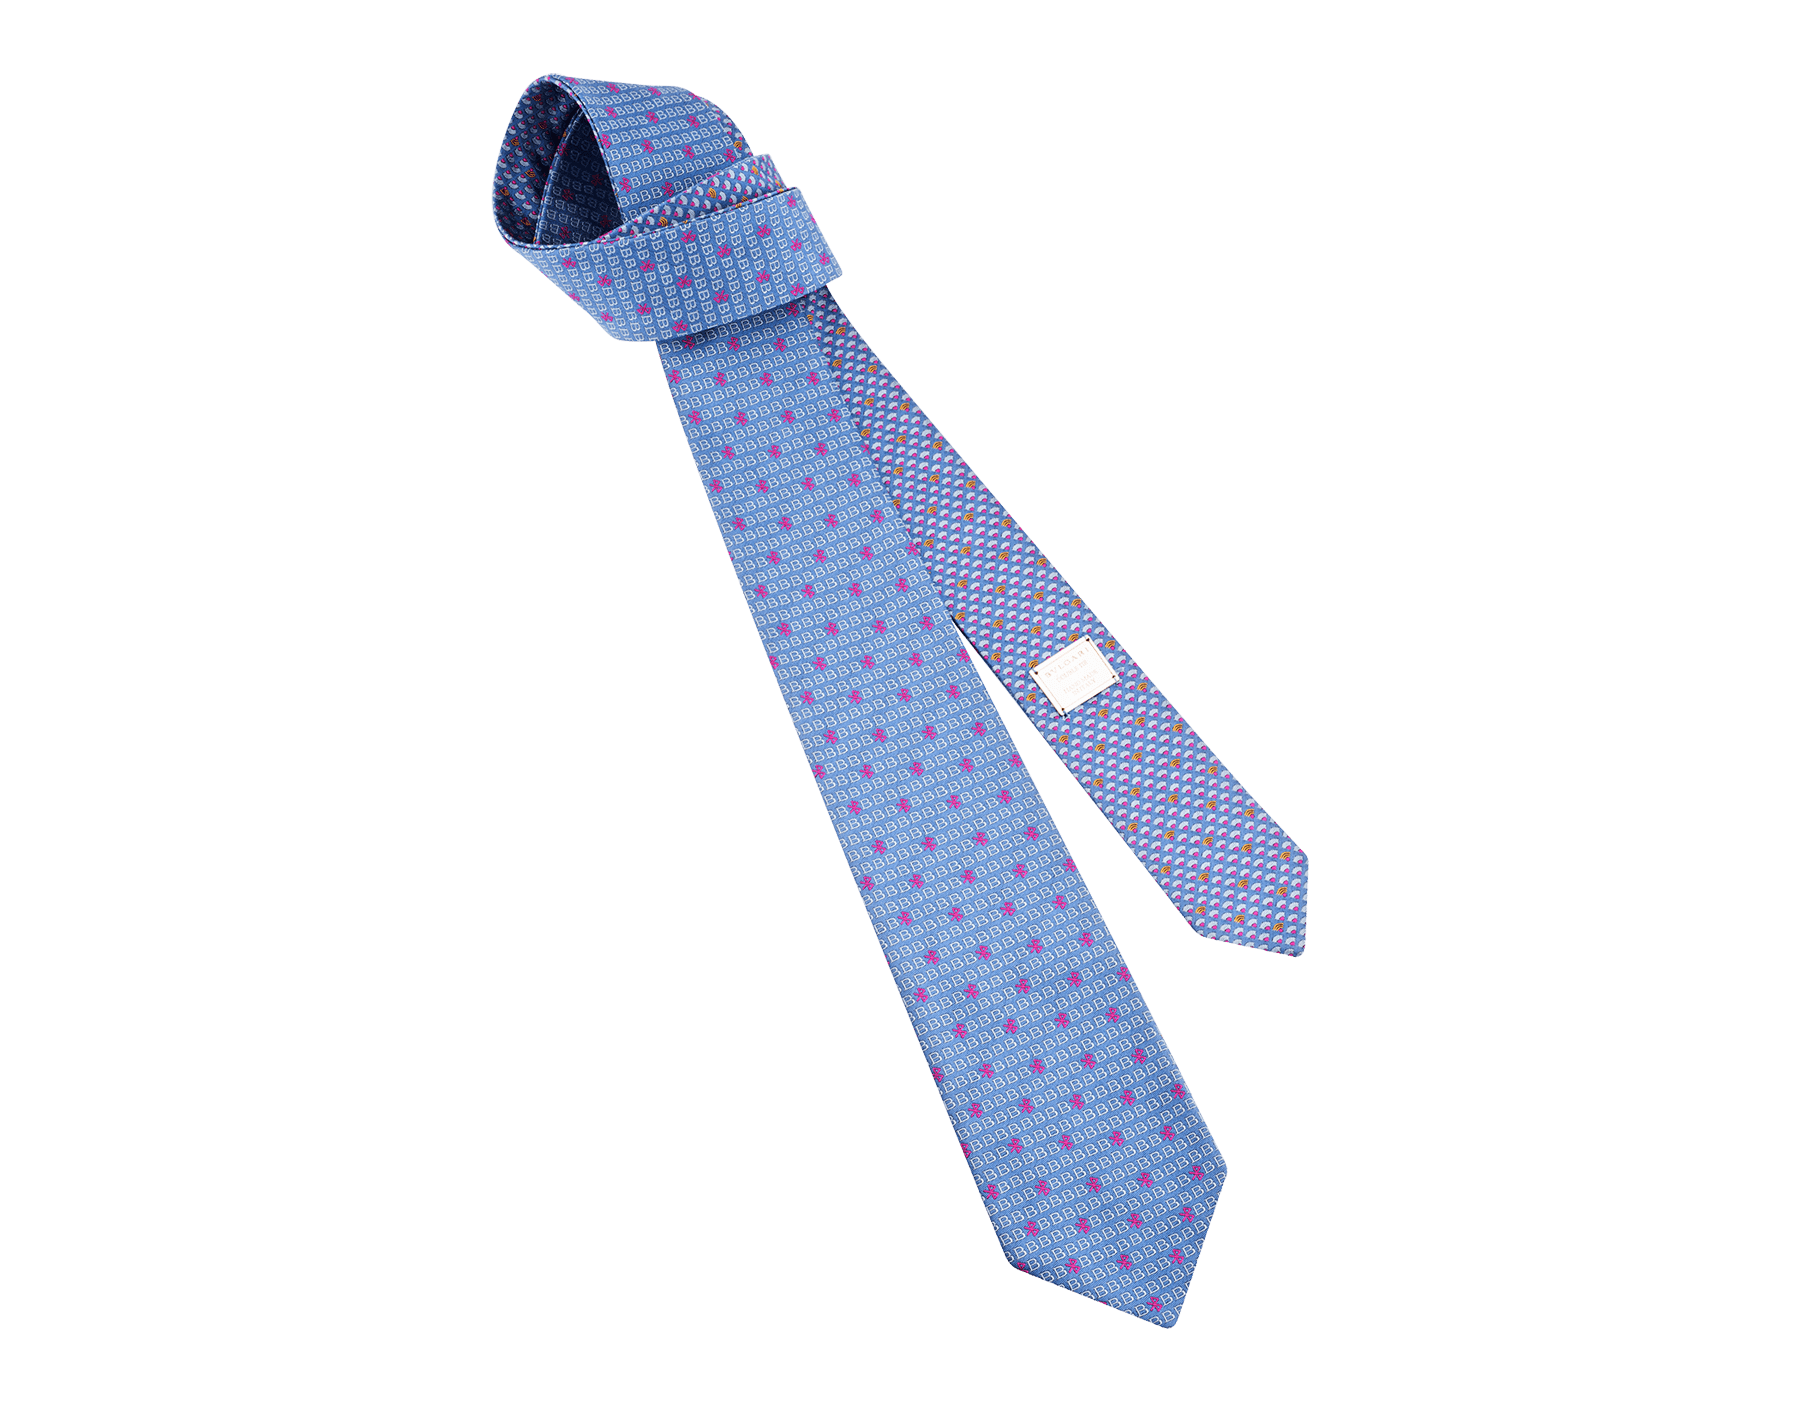 Blue Double BVL Tech pattern tie in fine silk. 243709 image 1